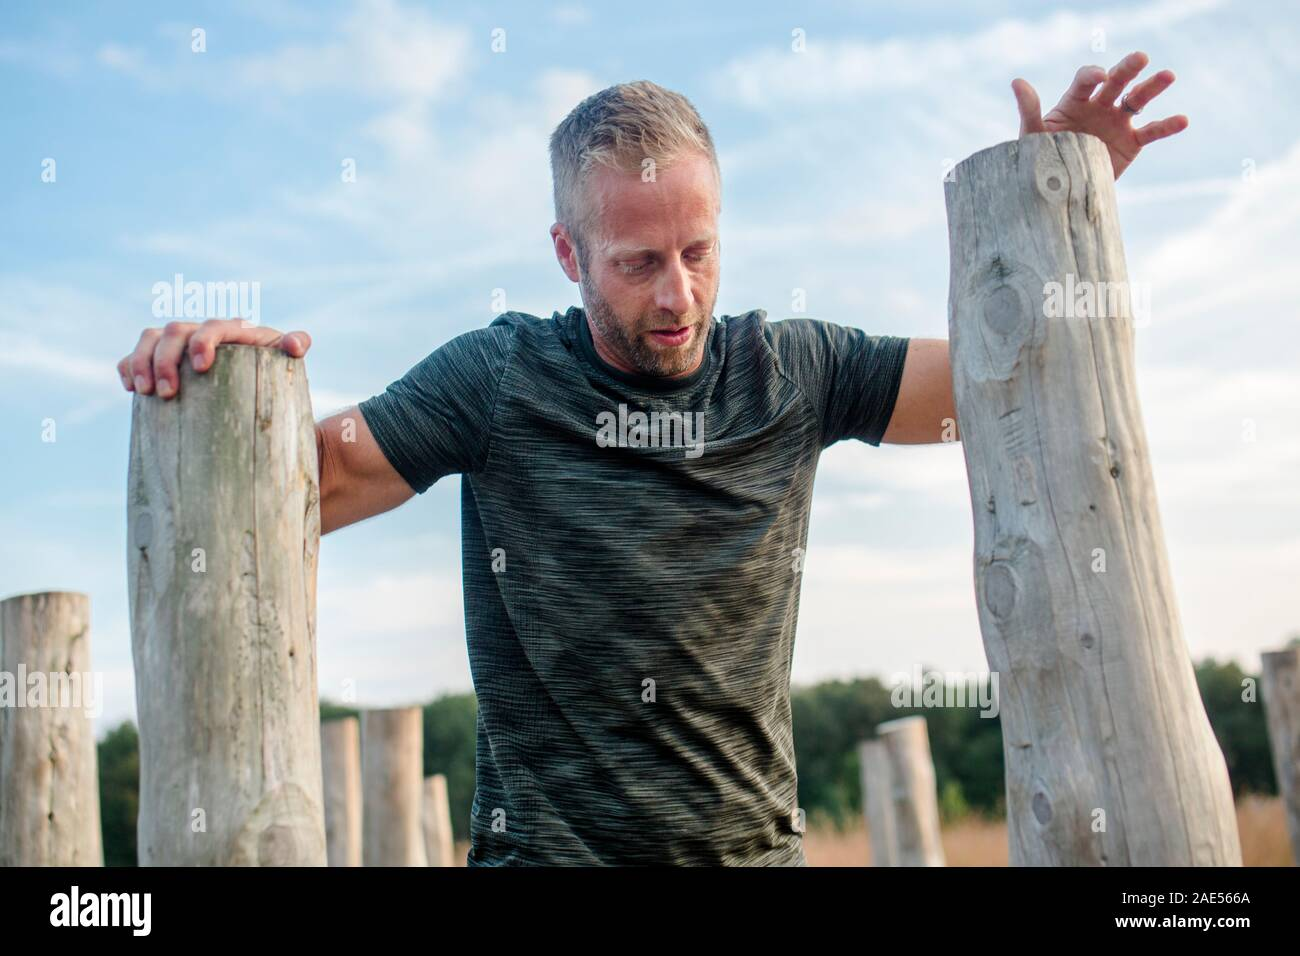 Top-half of man leaning on wood poles on obstacle course Stock Photo